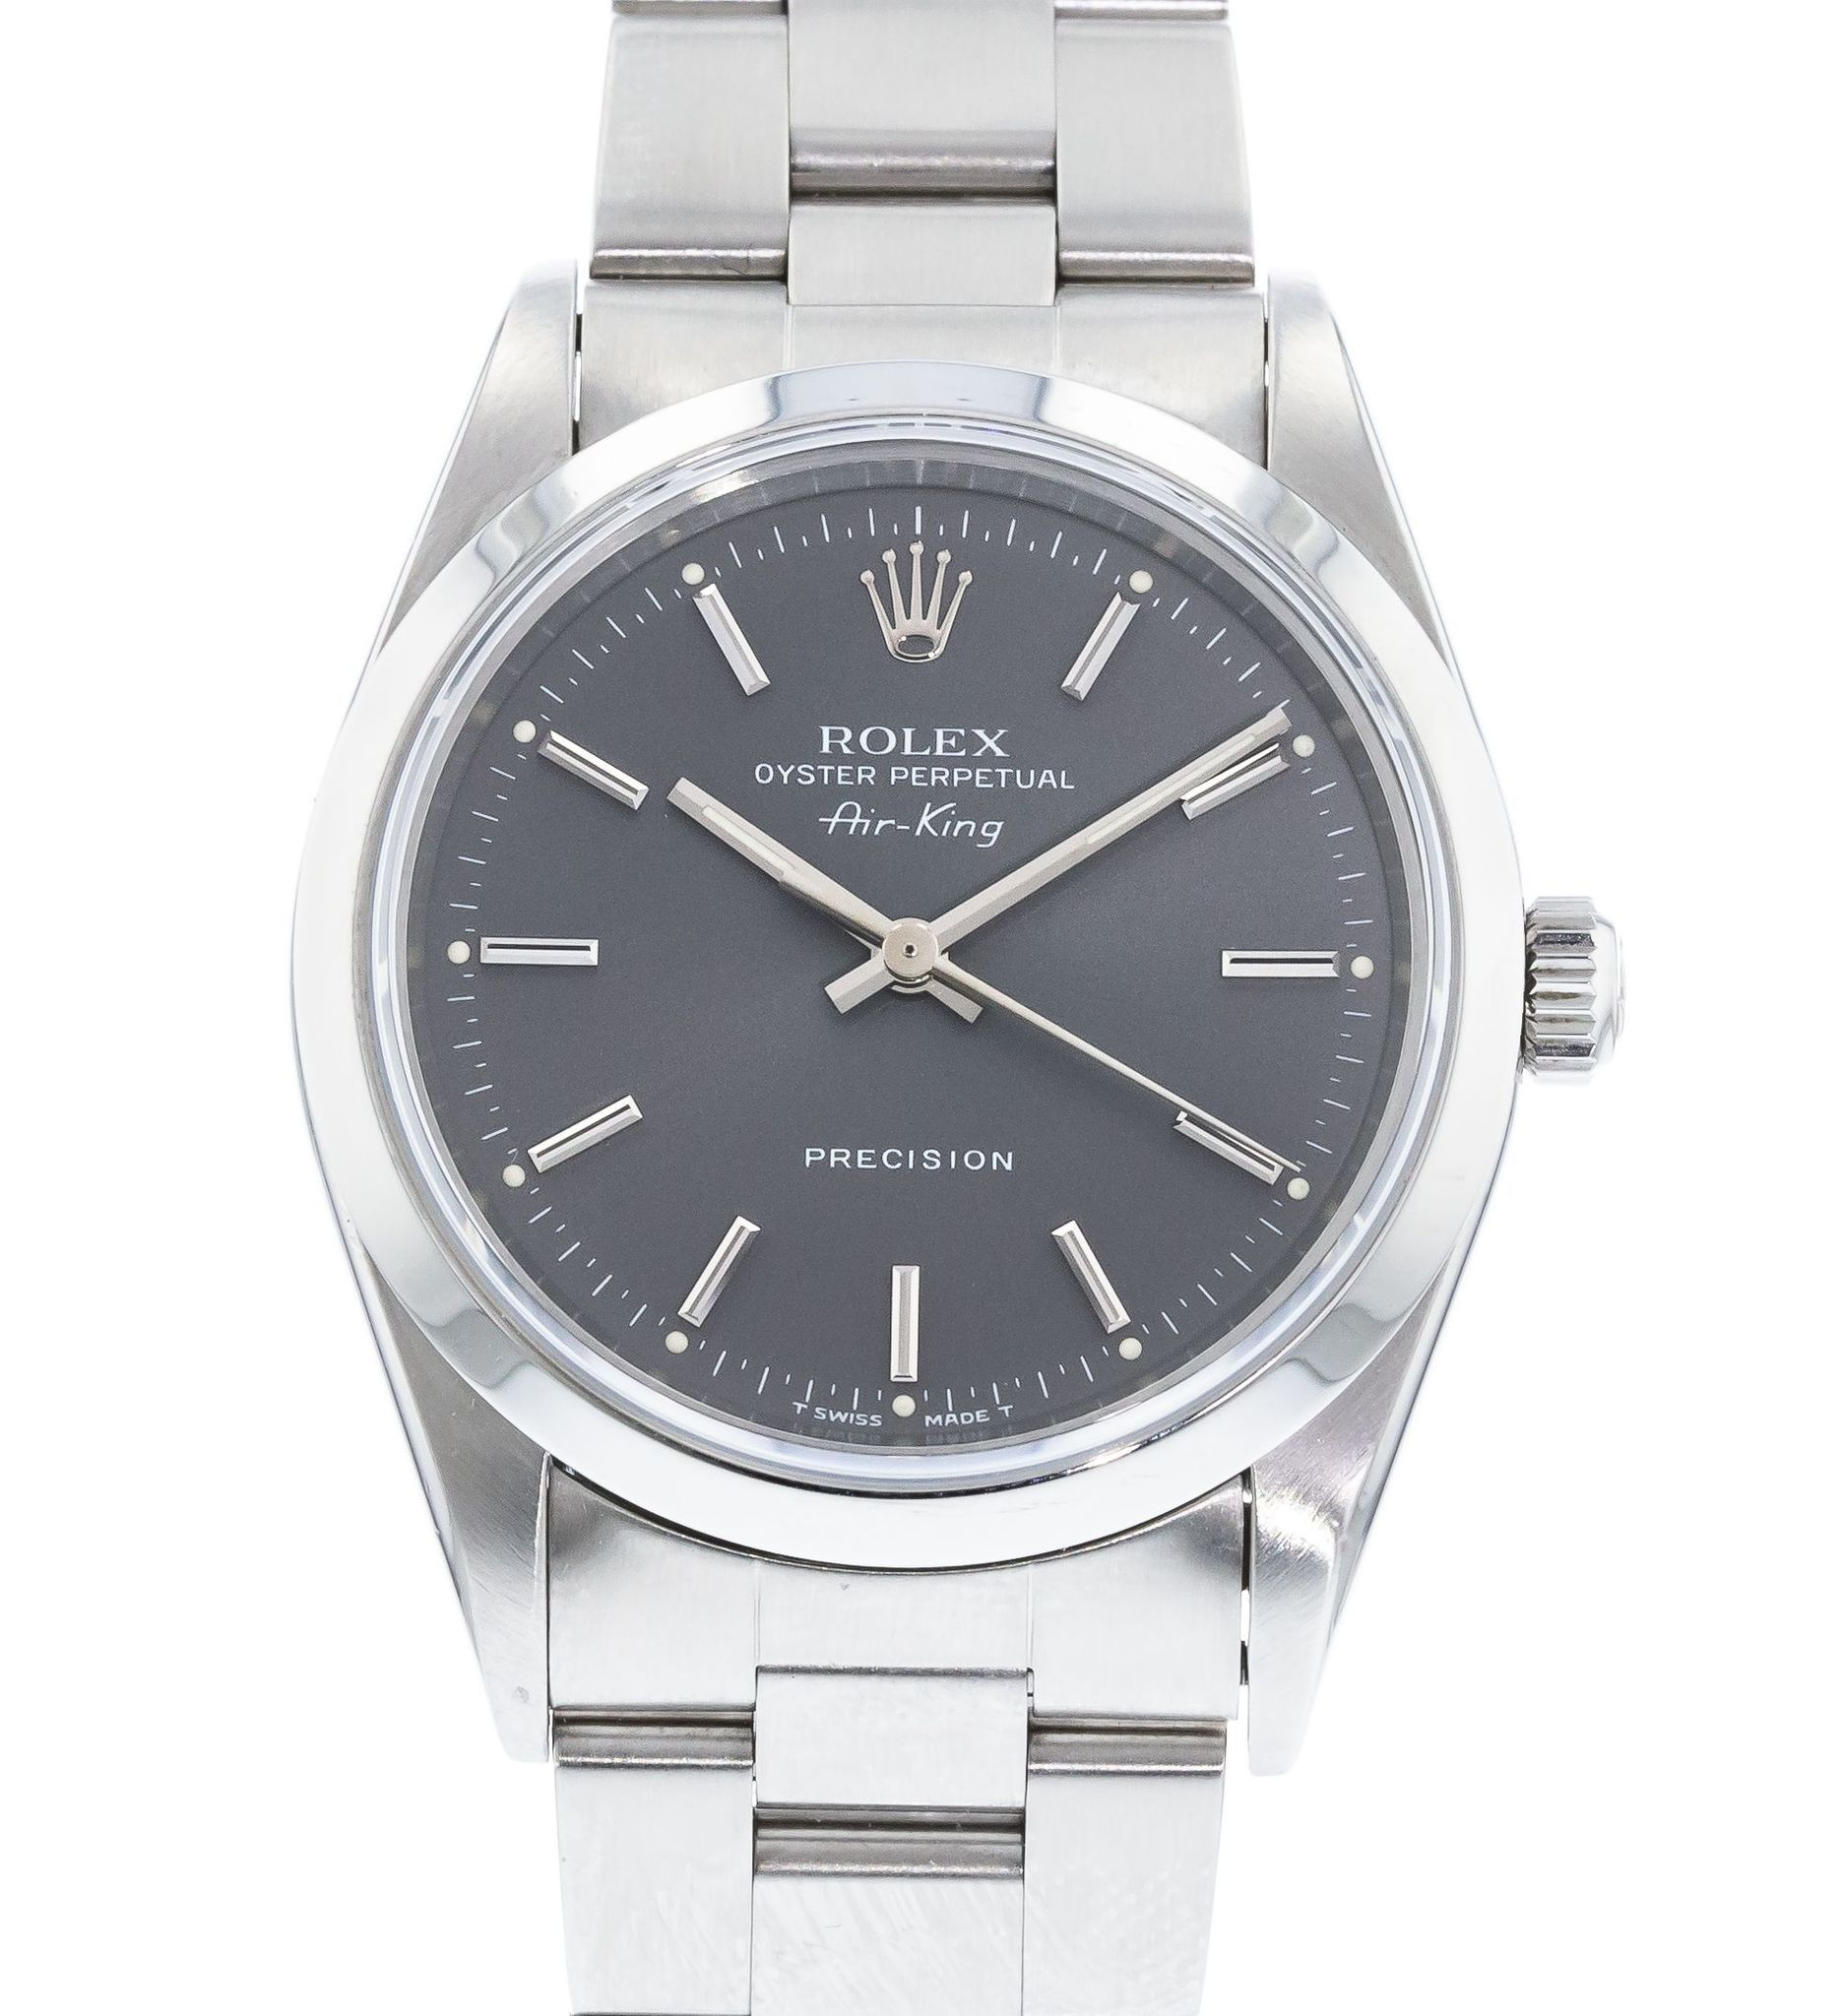 Rolex AirKing 14000 Rolex, Rolex air king, Rolex